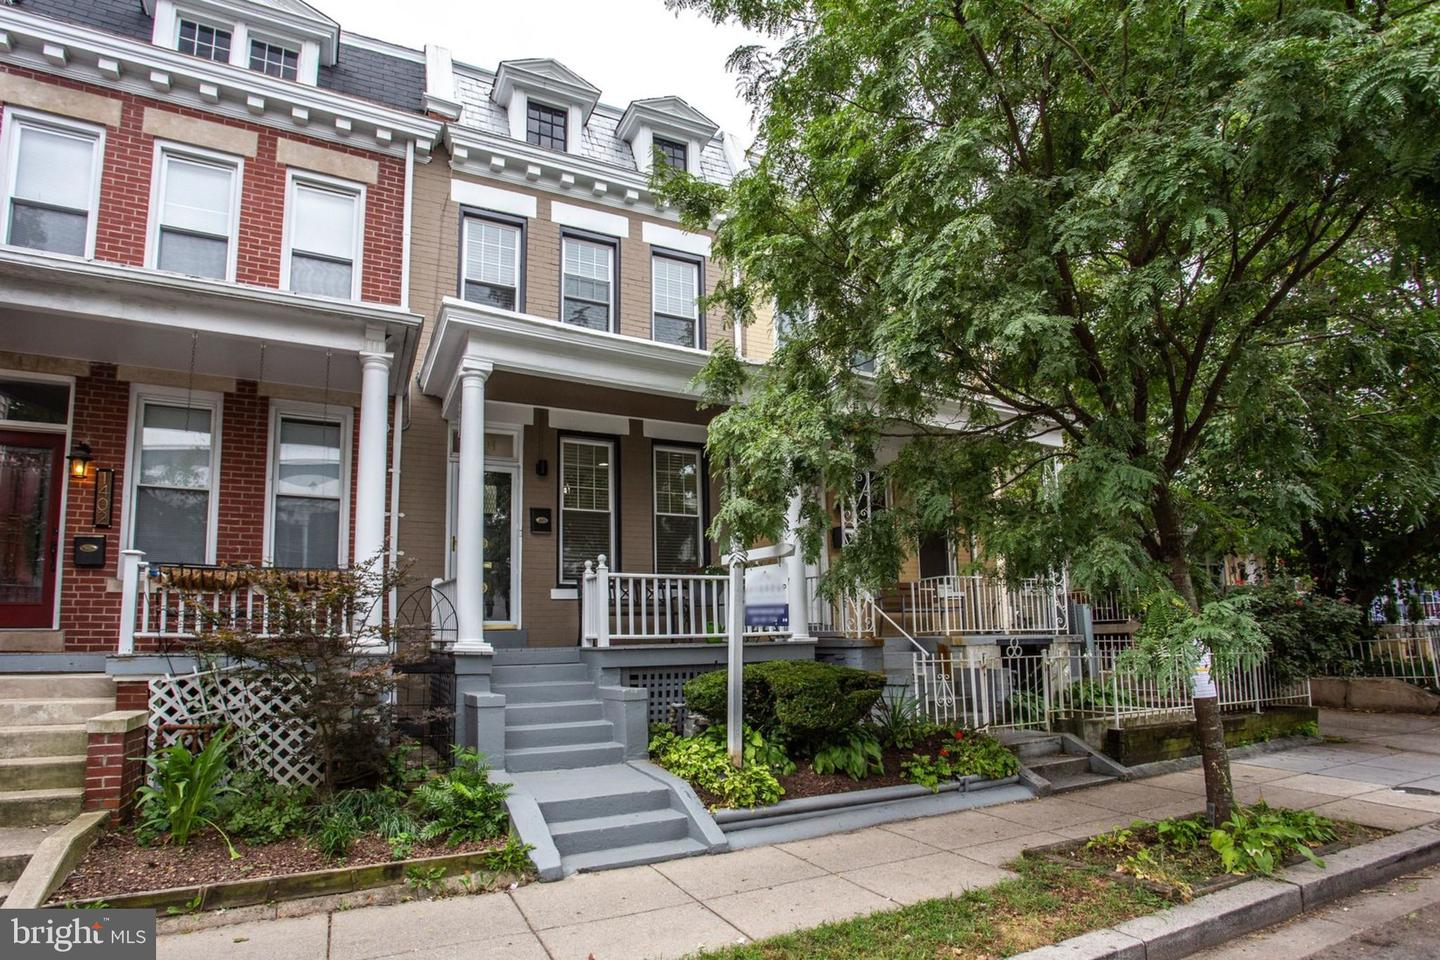 1404 NW PERRY PLACE NW, WASHINGTON, District of Columbia